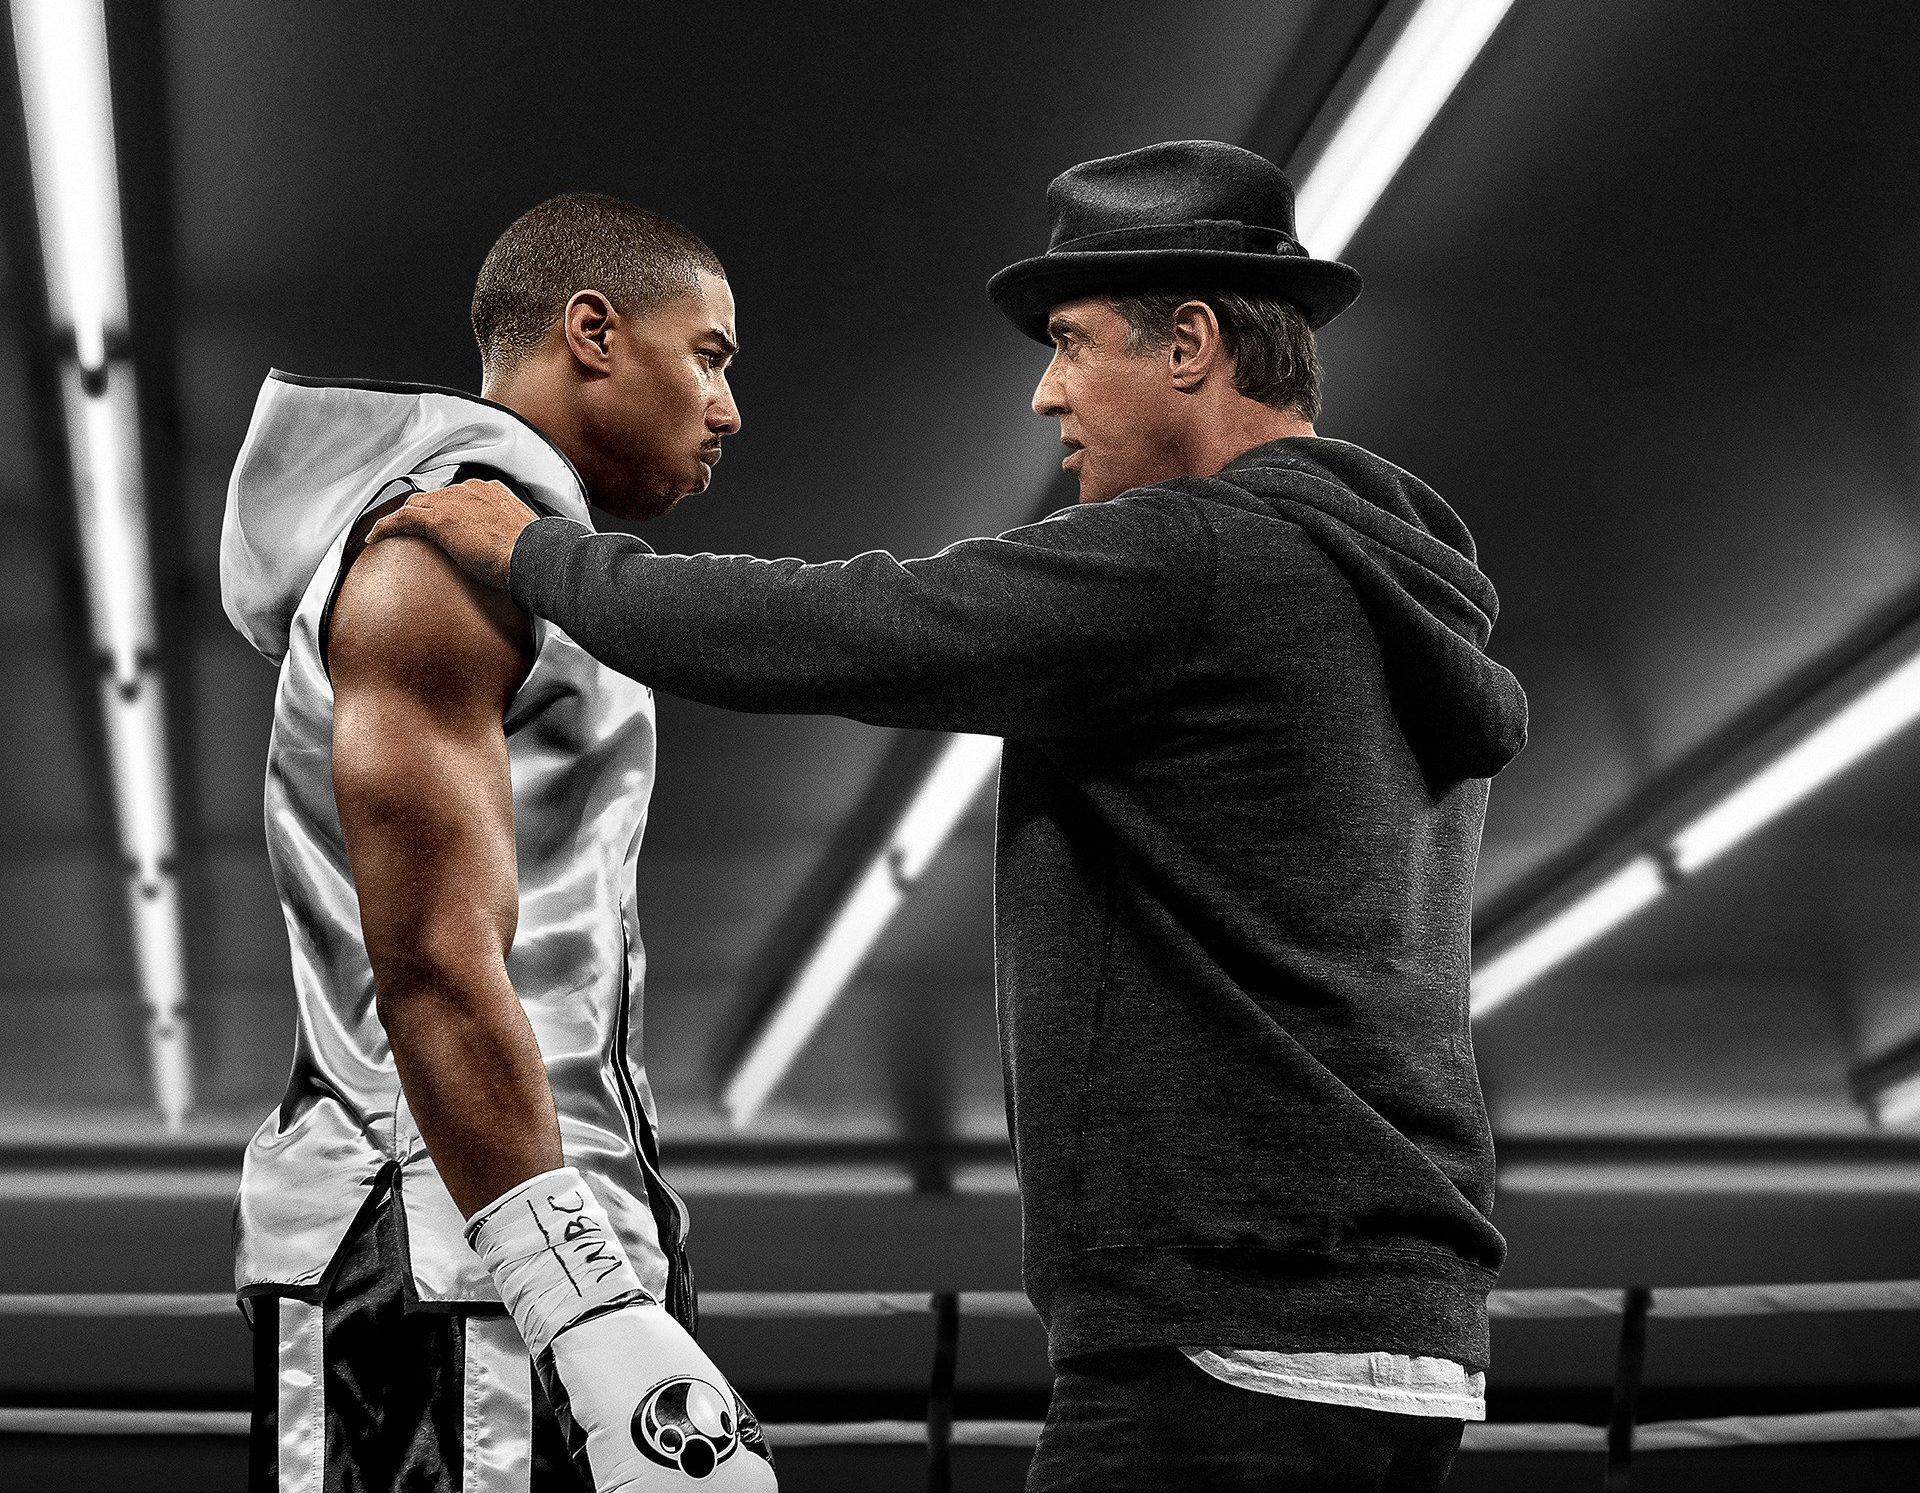 Michael B Jordan And Sylvester Stallone In Creed Movie Hd